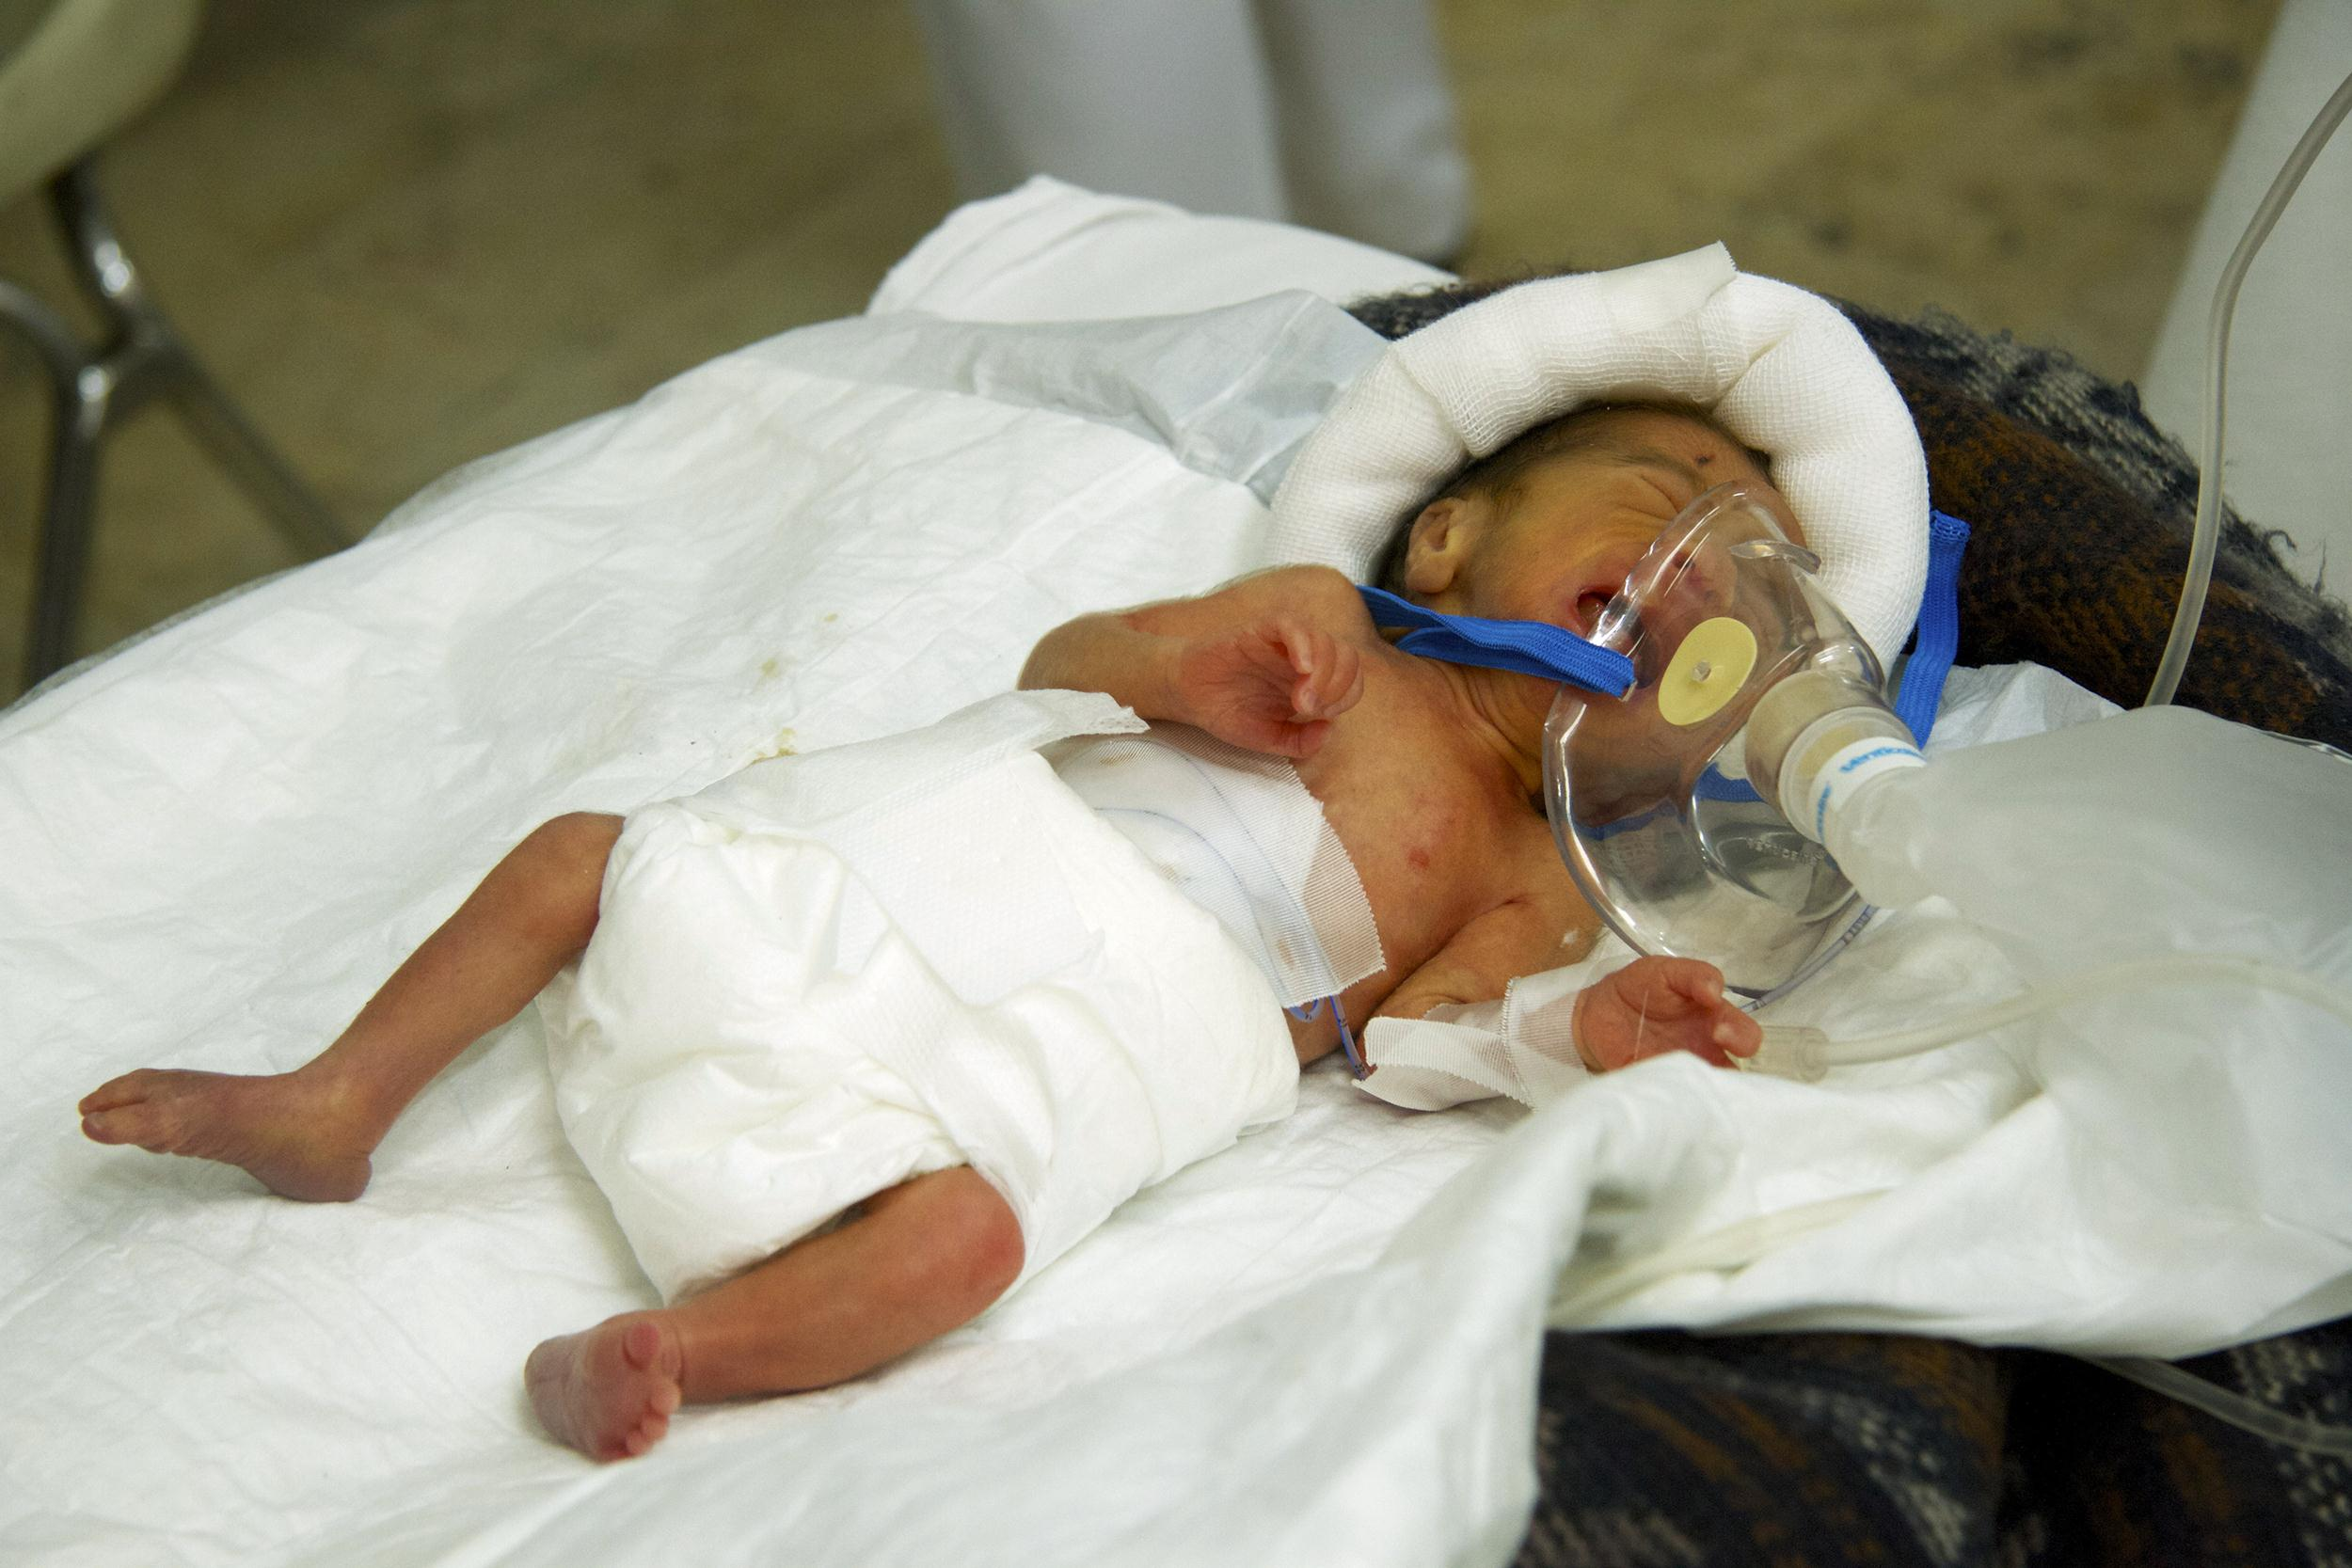 Image: Ali Shaaban is one day old.